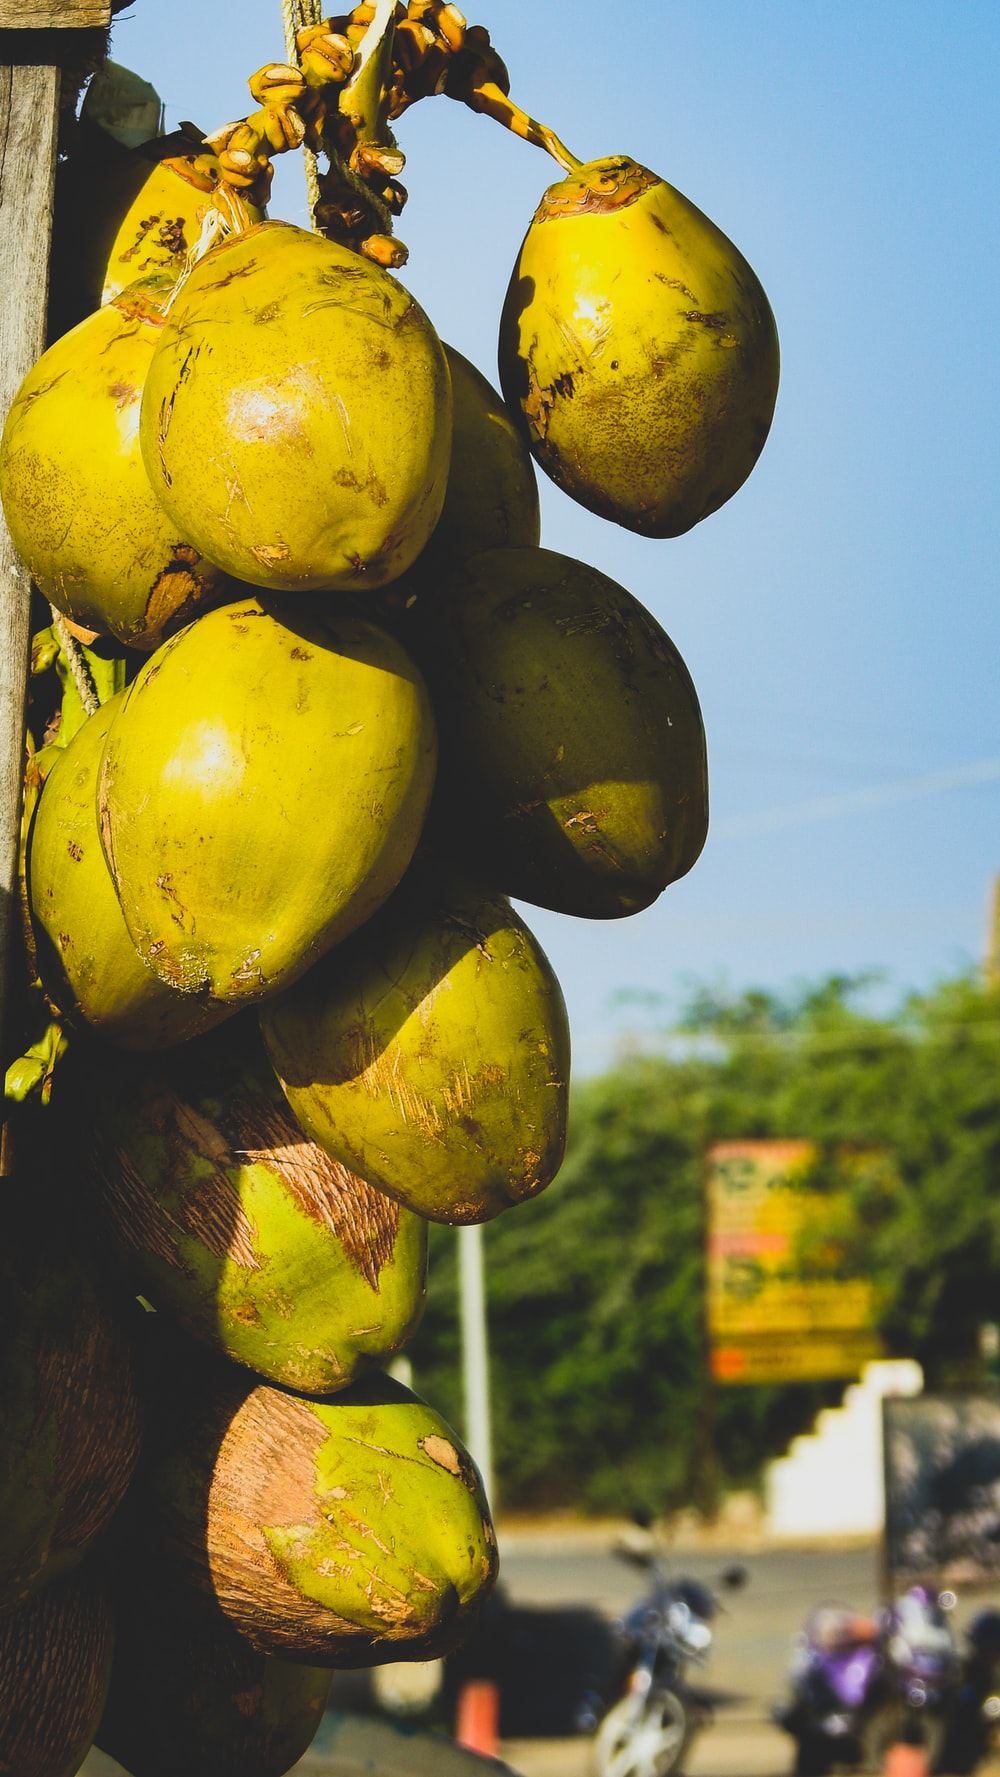 yellow and green fruit during daytime